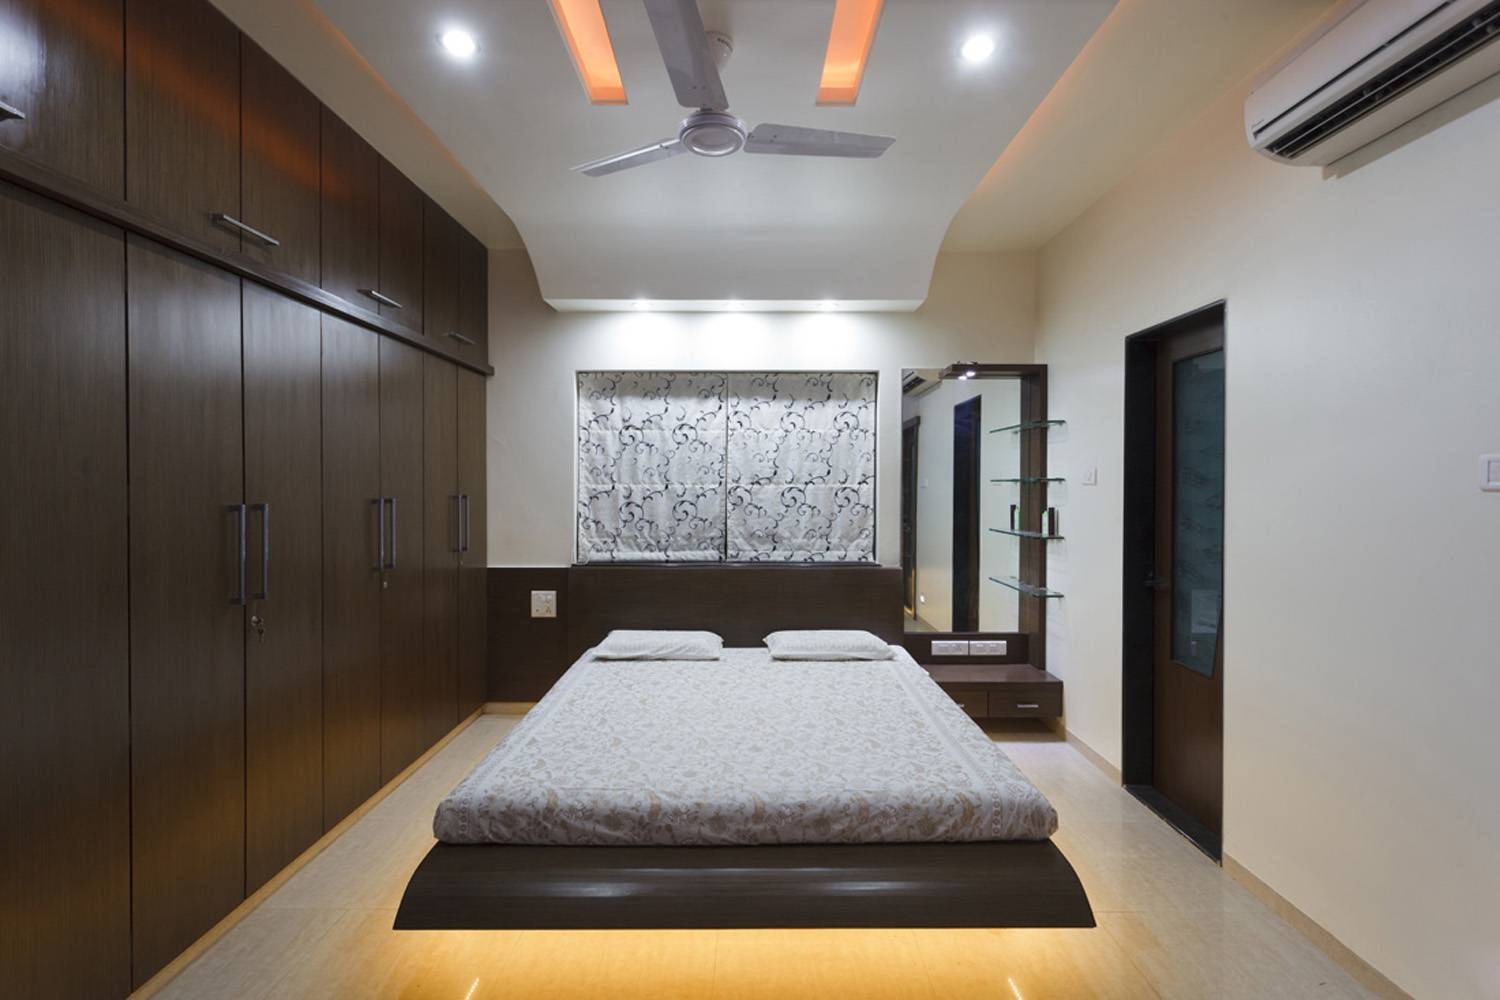 Bed room interior design portfolio leading interior for Interior design